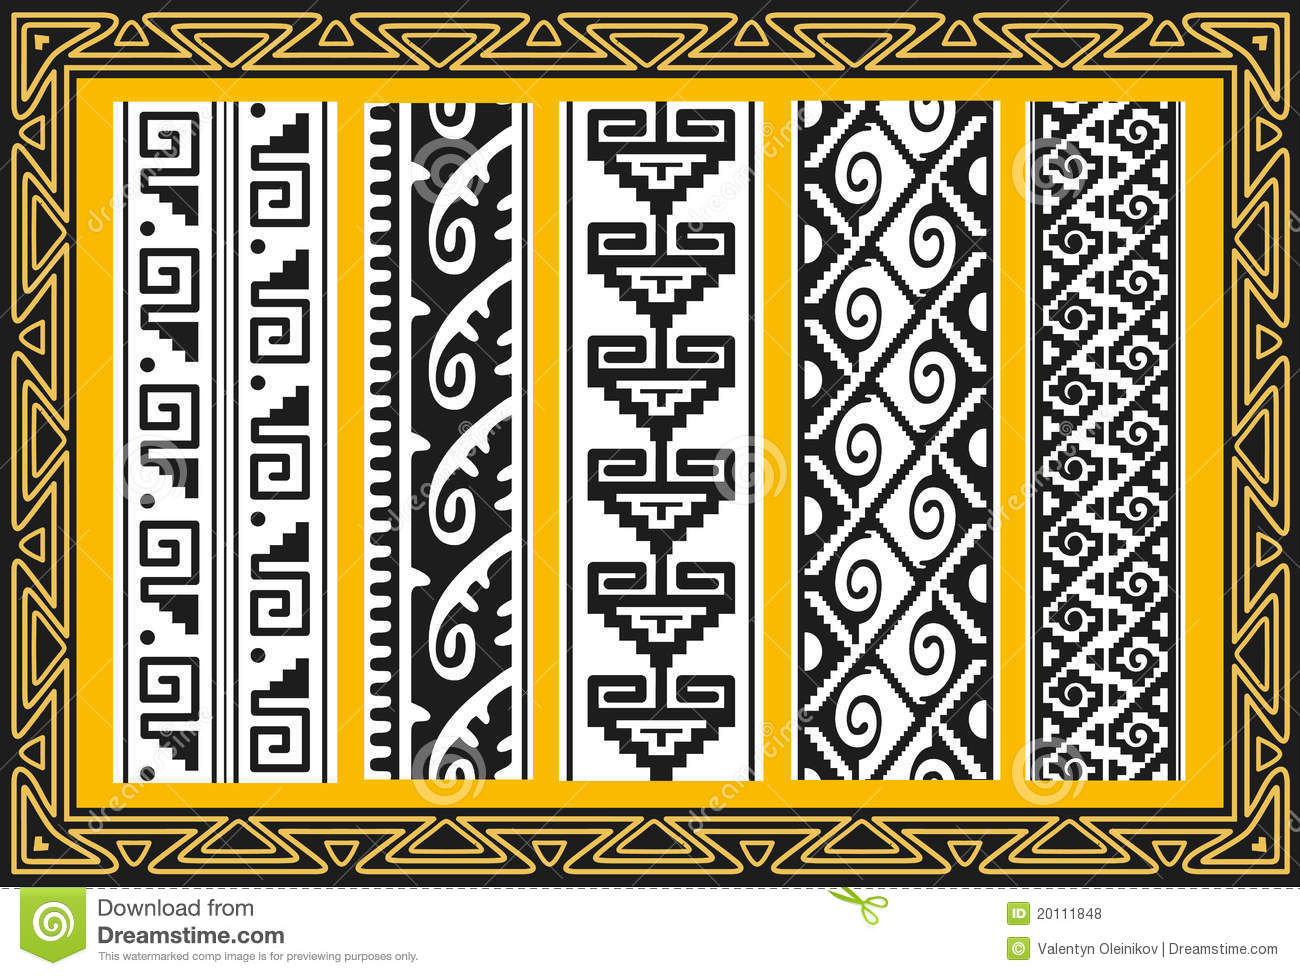 American Indian Patterns and Designs